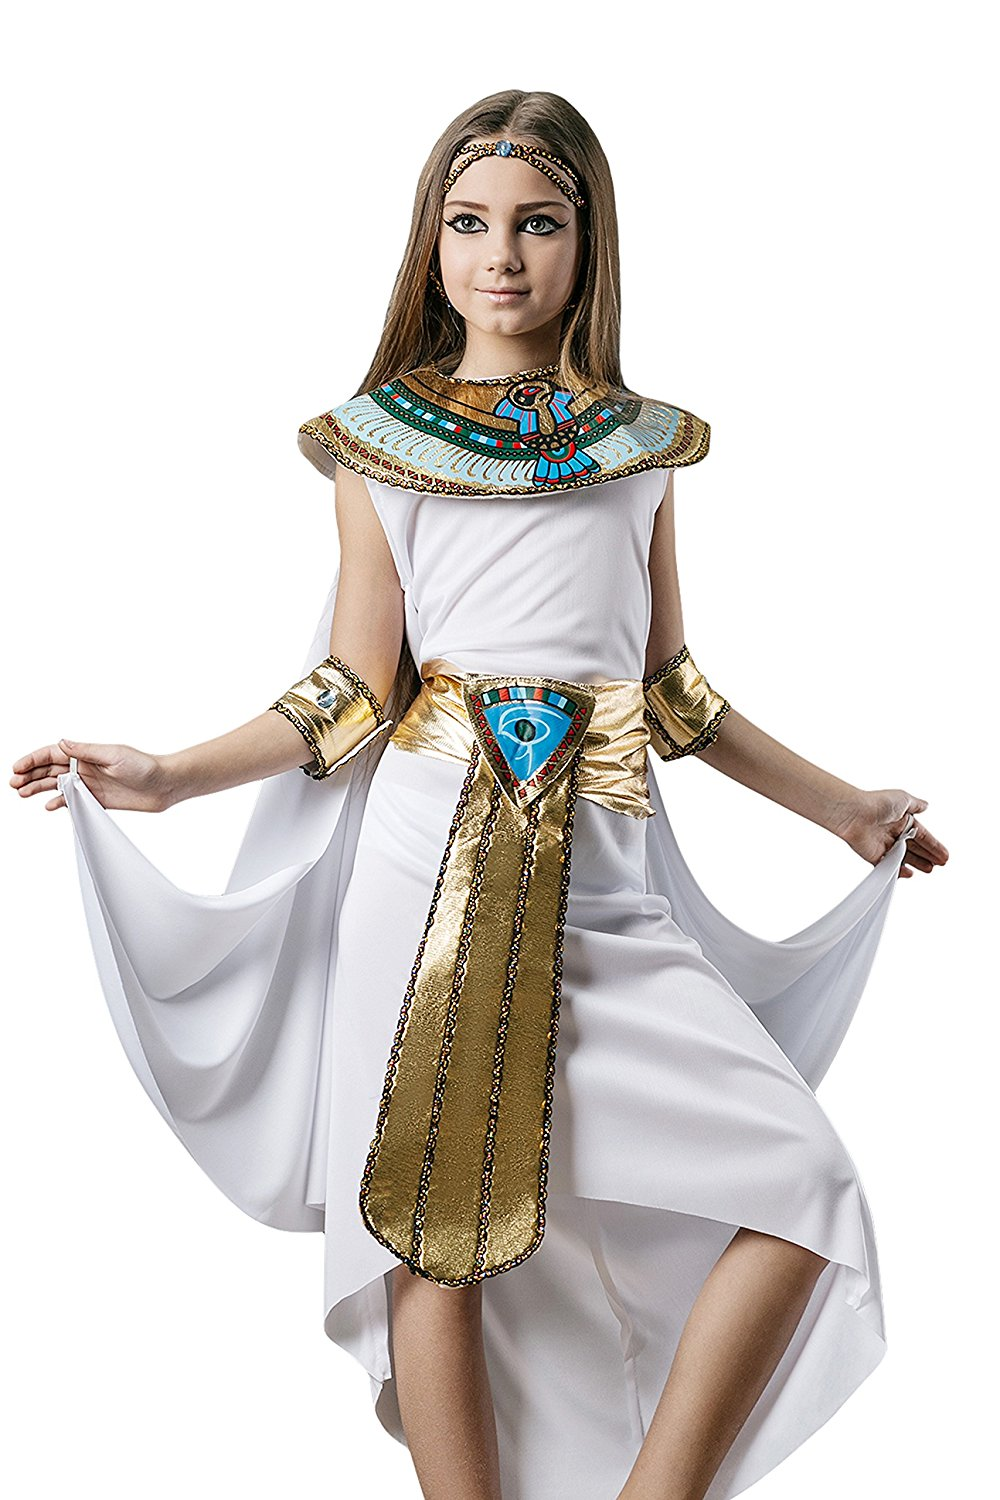 kids girls cleopatra halloween costume egyptian princess dress up role play 6 8